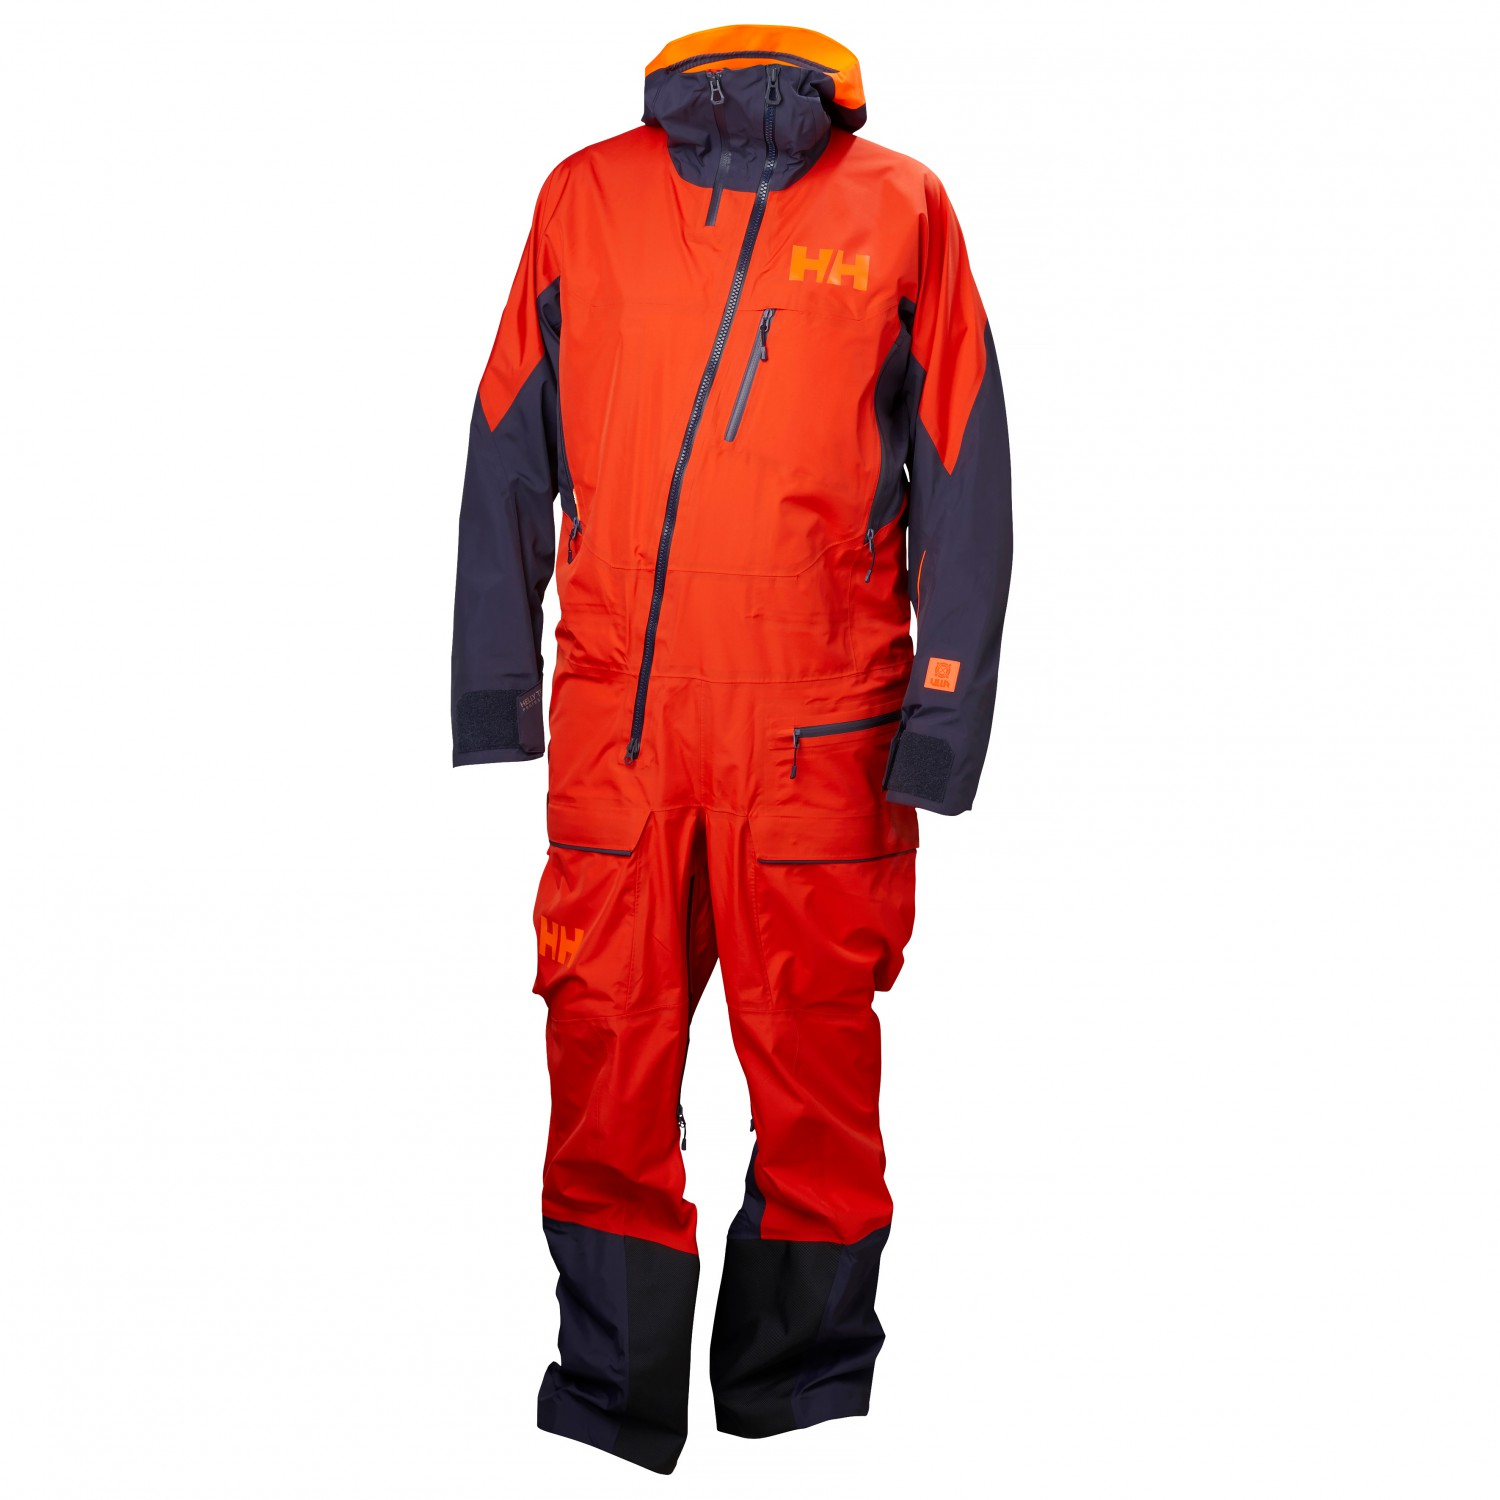 4099a3ac8ce ... Helly Hansen - Ullr Powder Suit - Overall ...